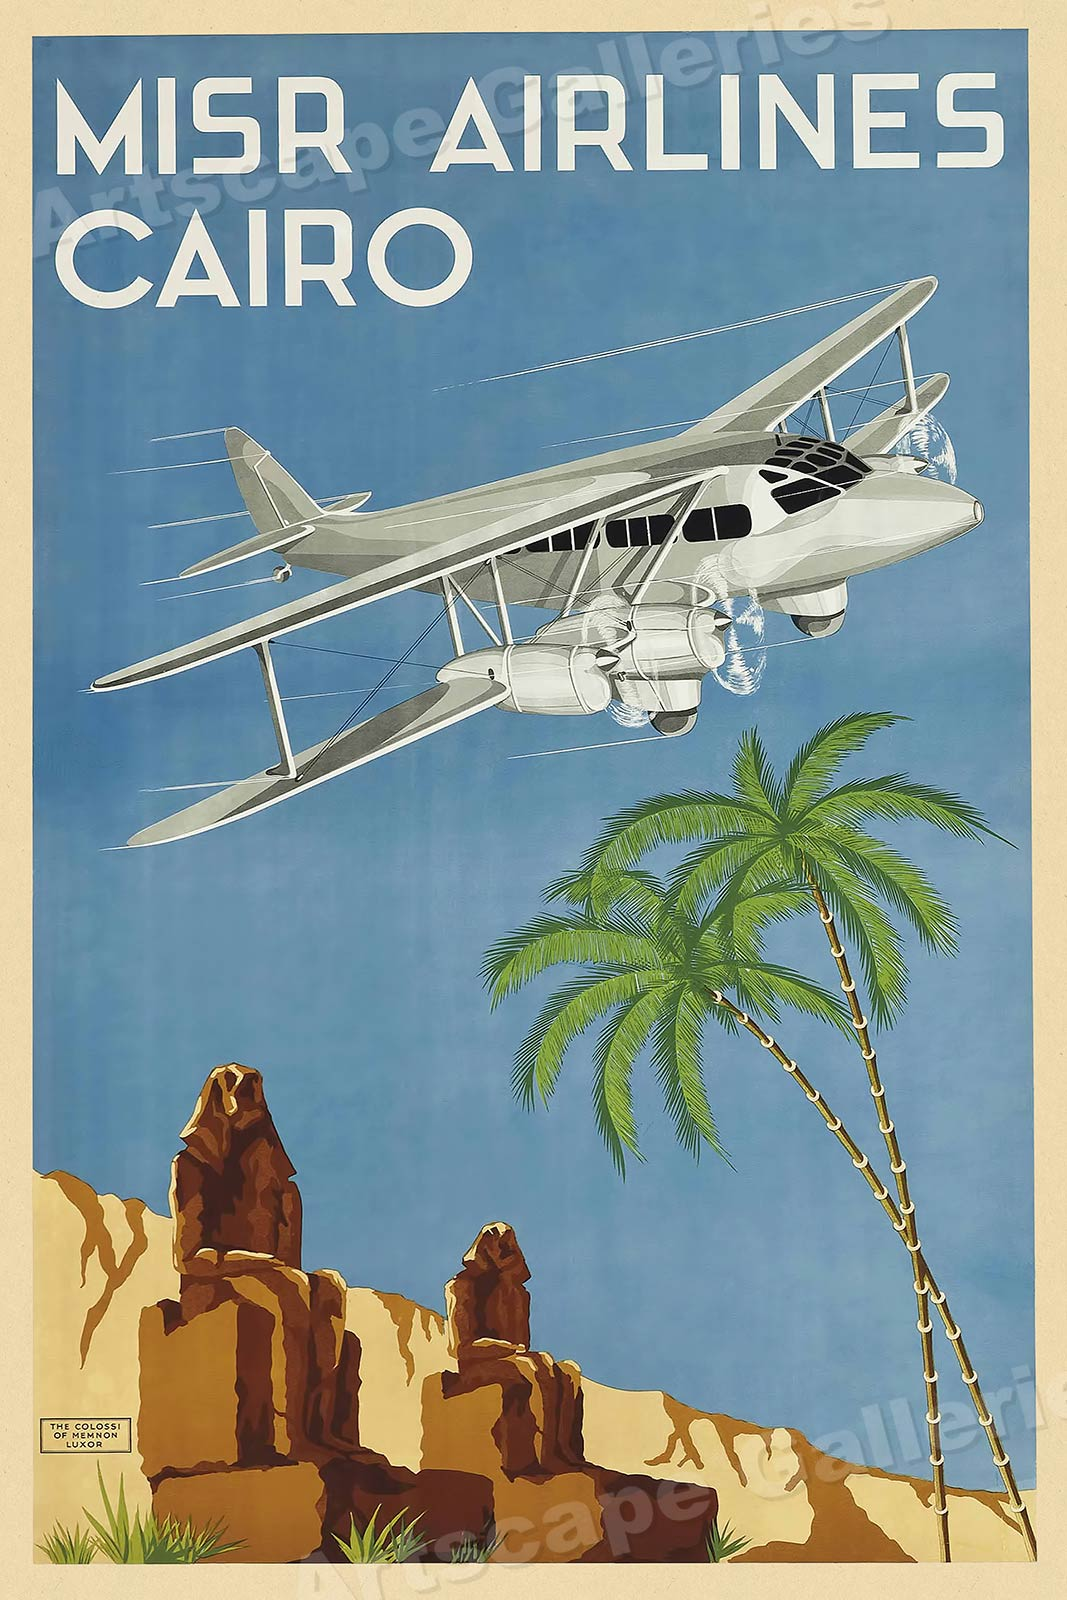 16x24 Condor Airlines Vintage Style Travel Poster Rio Brazil